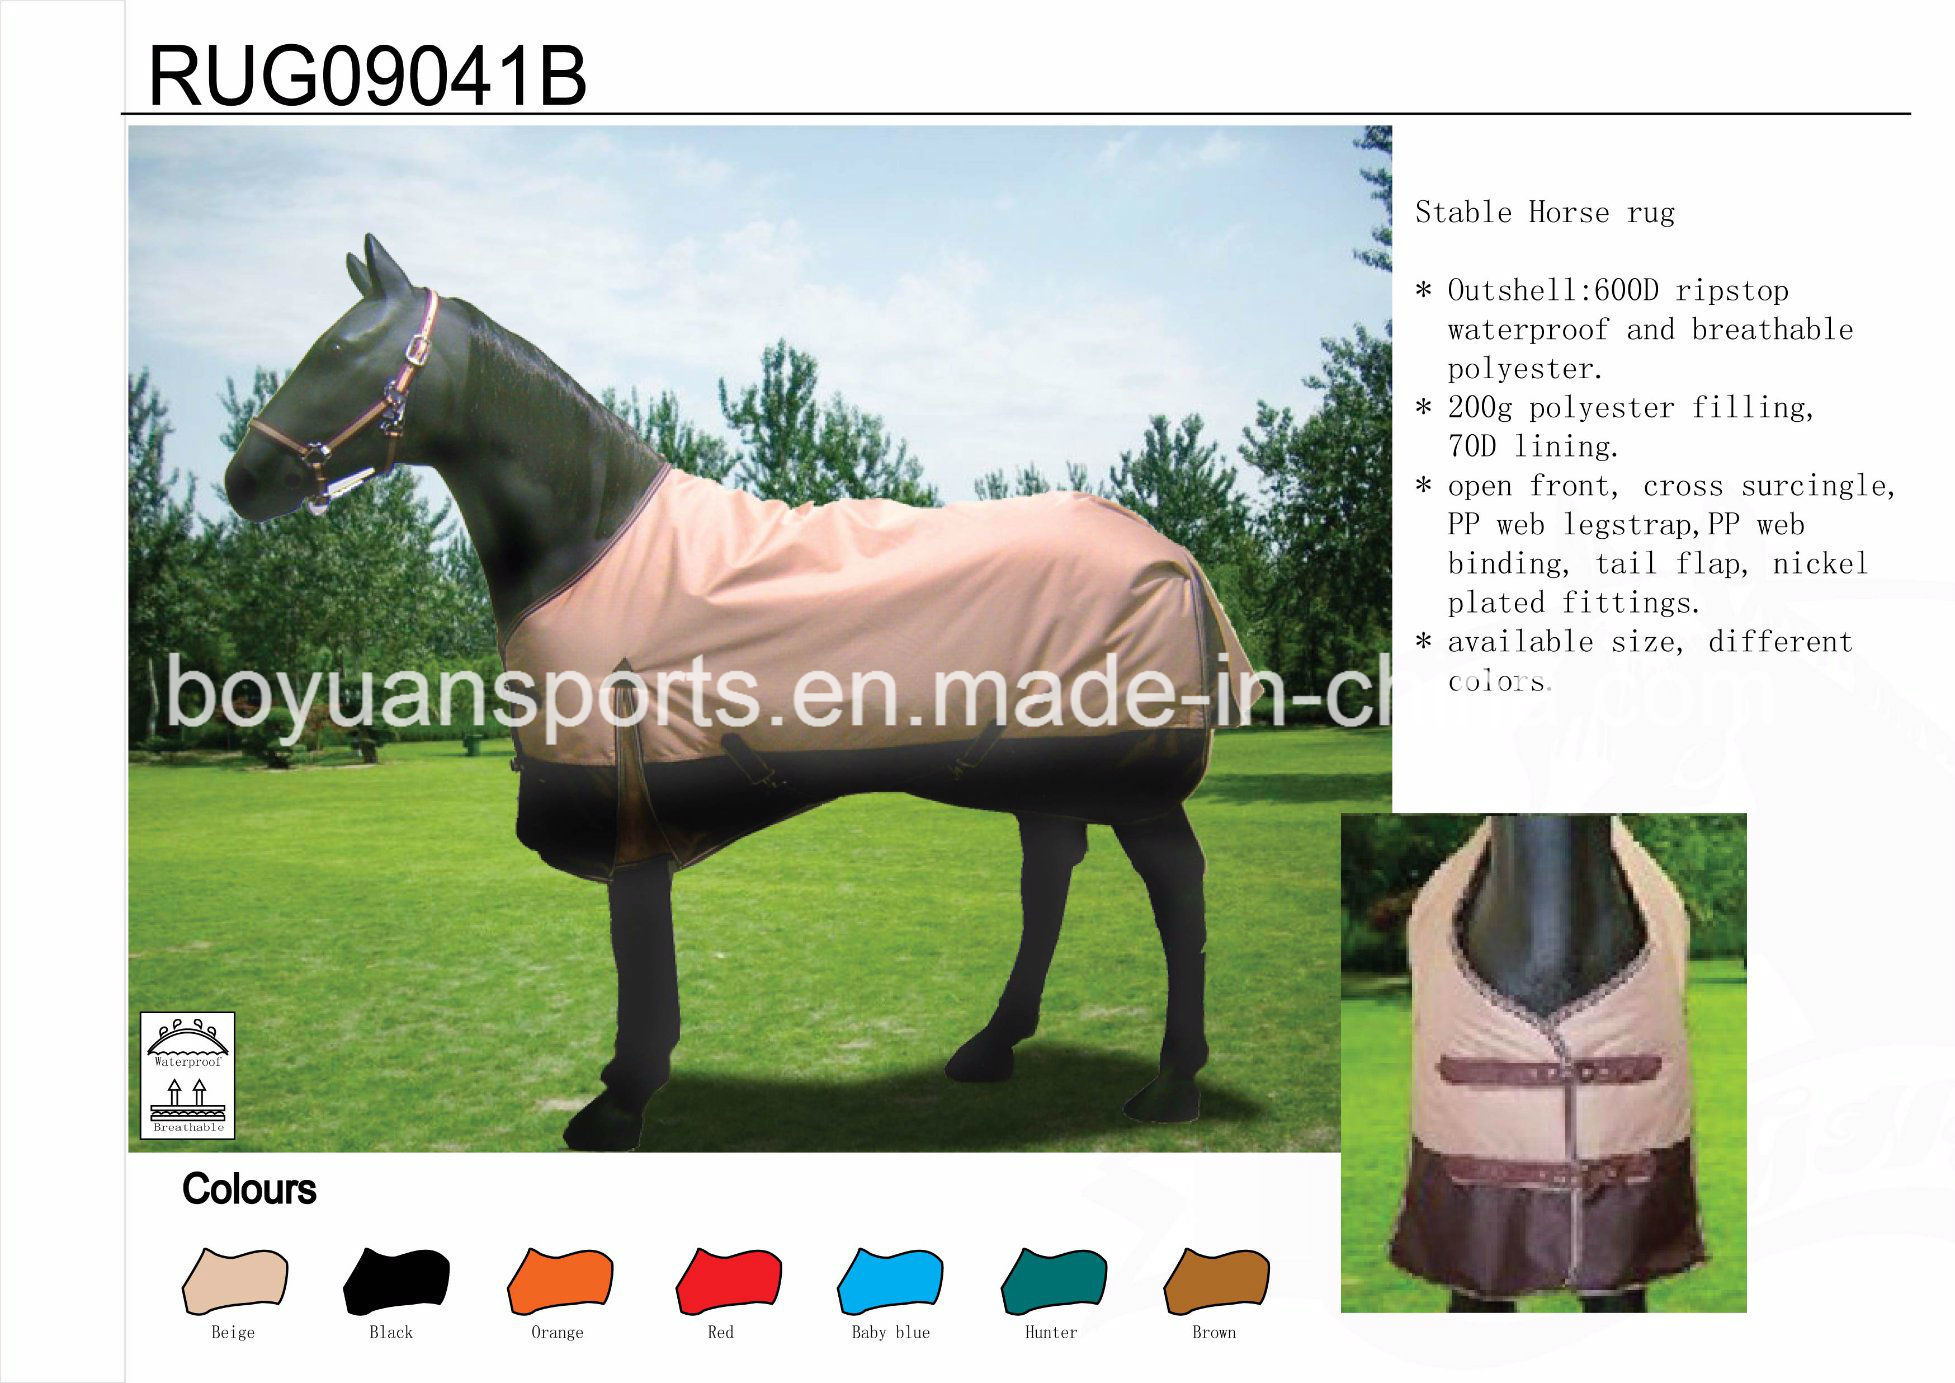 Hot Item Winter Ripstop Waterproof Breathable Horse Rugs For Whole